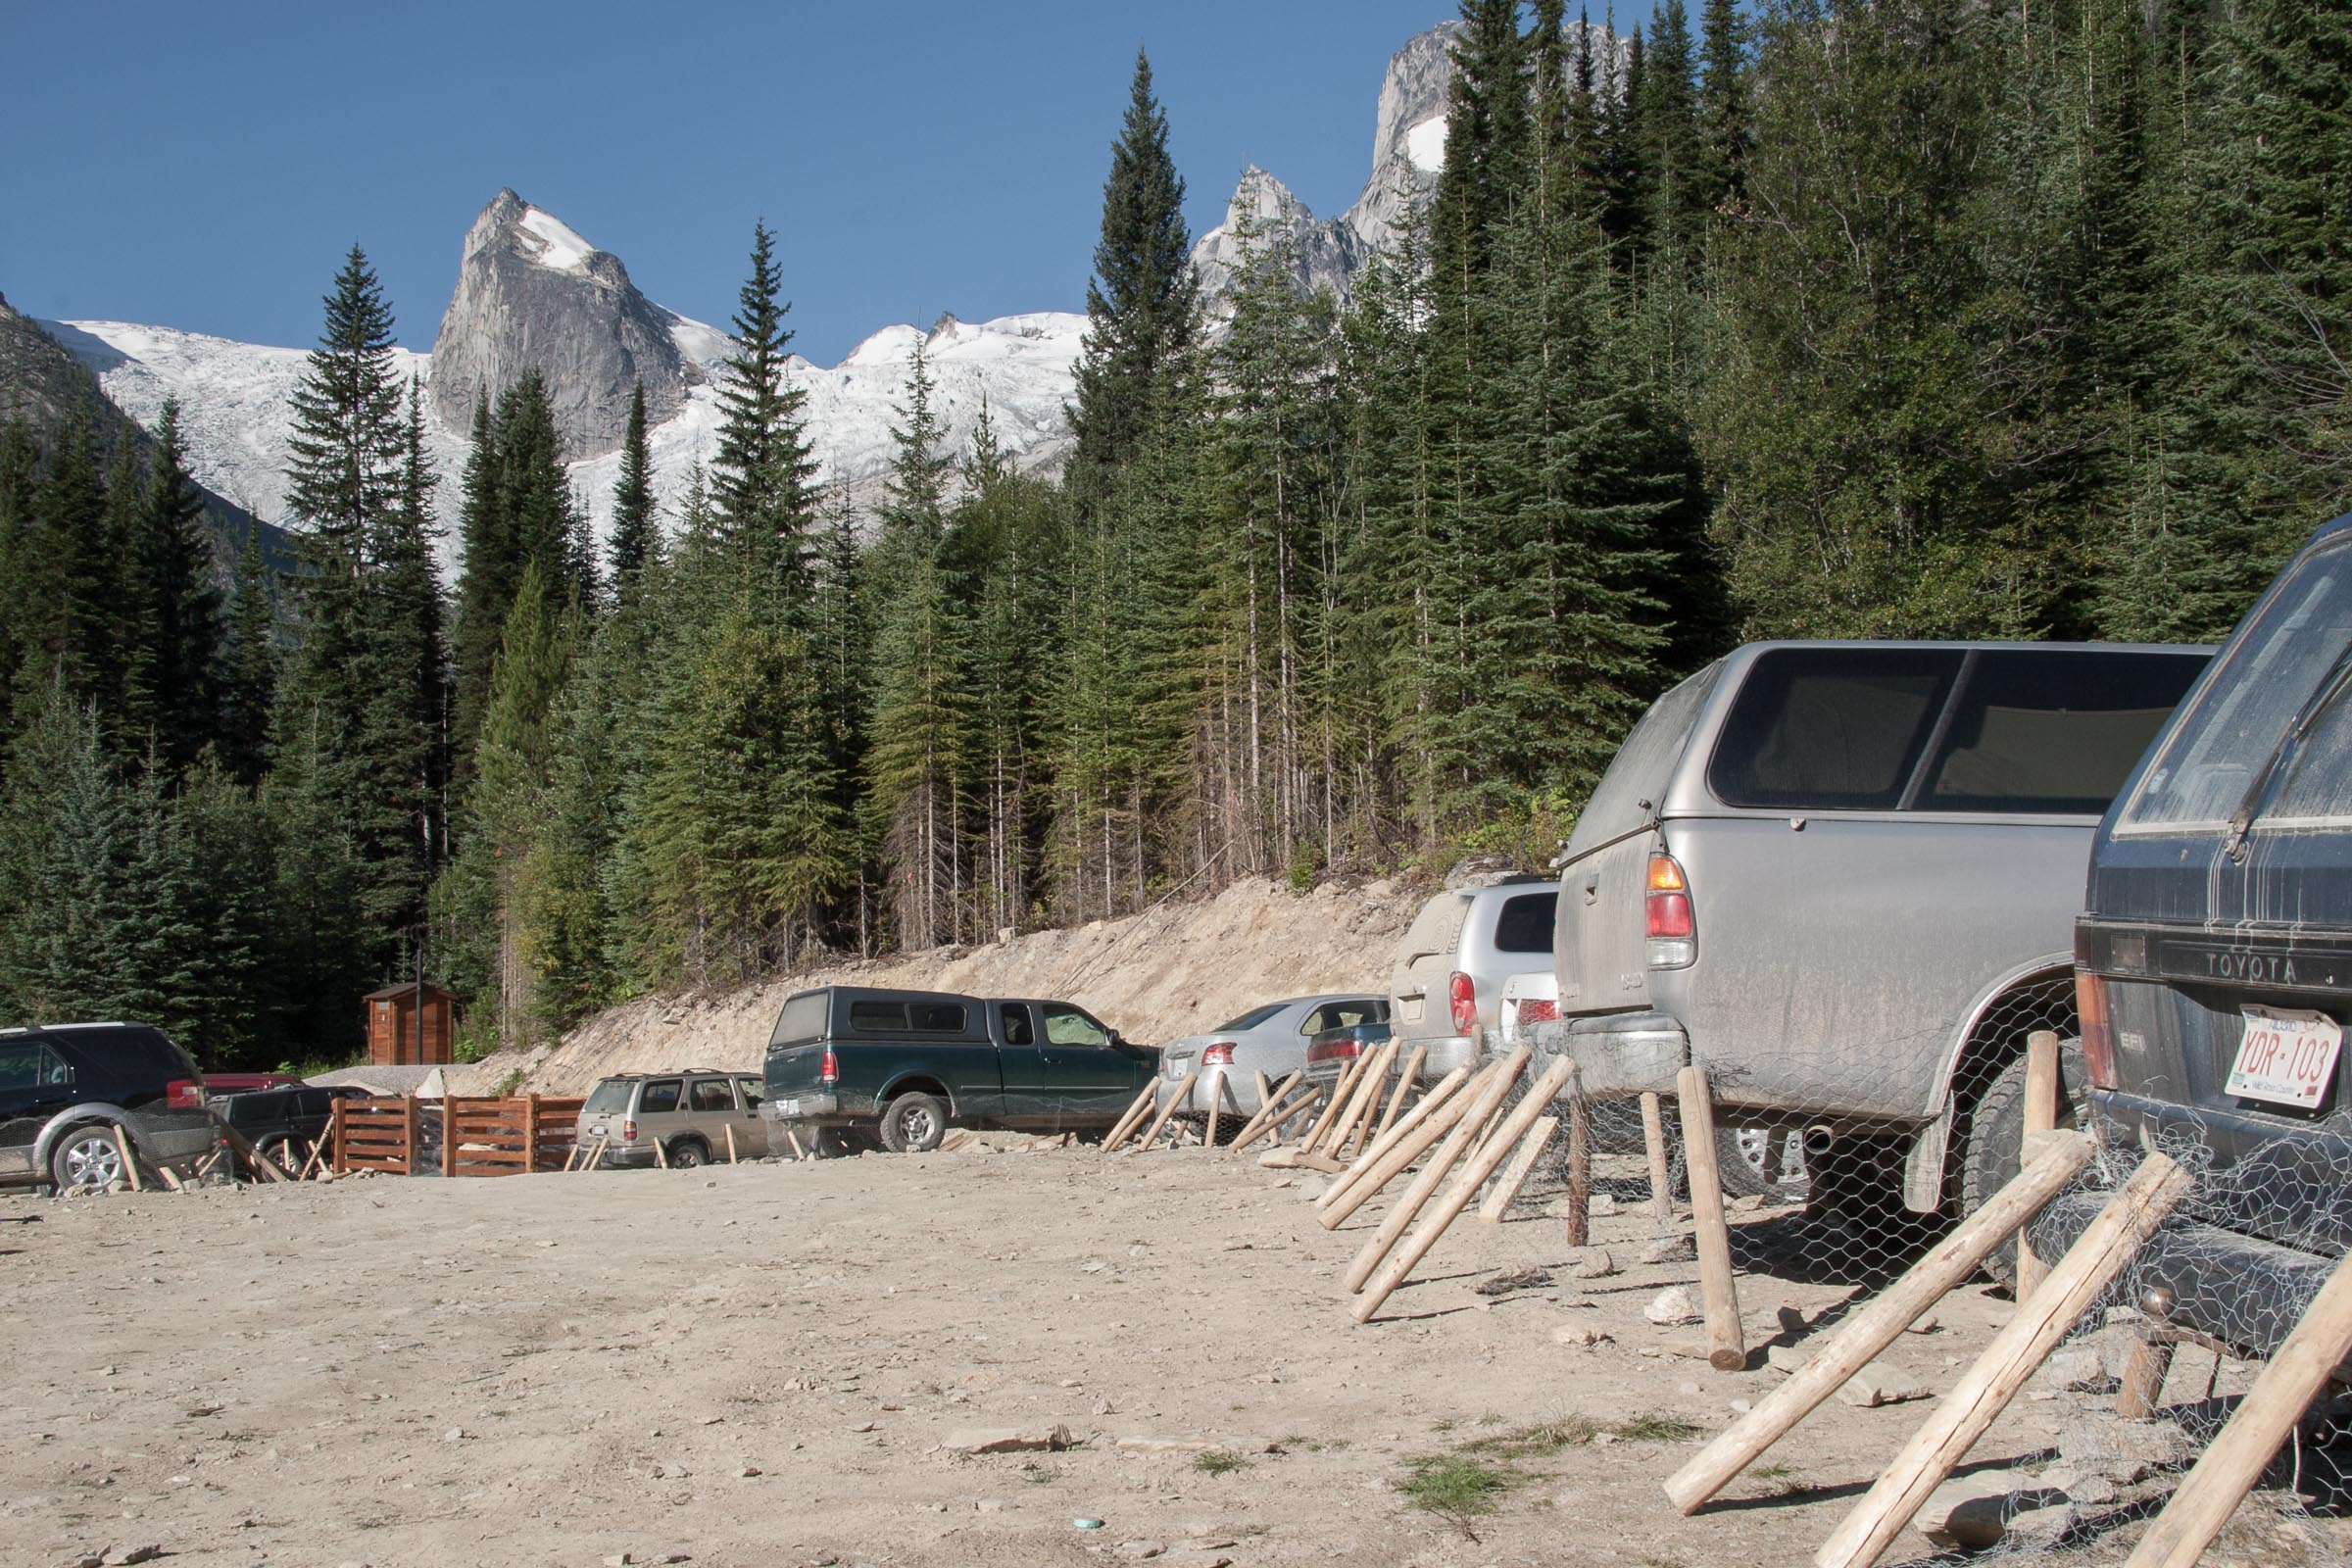 Parking at Bugaboos trailhead